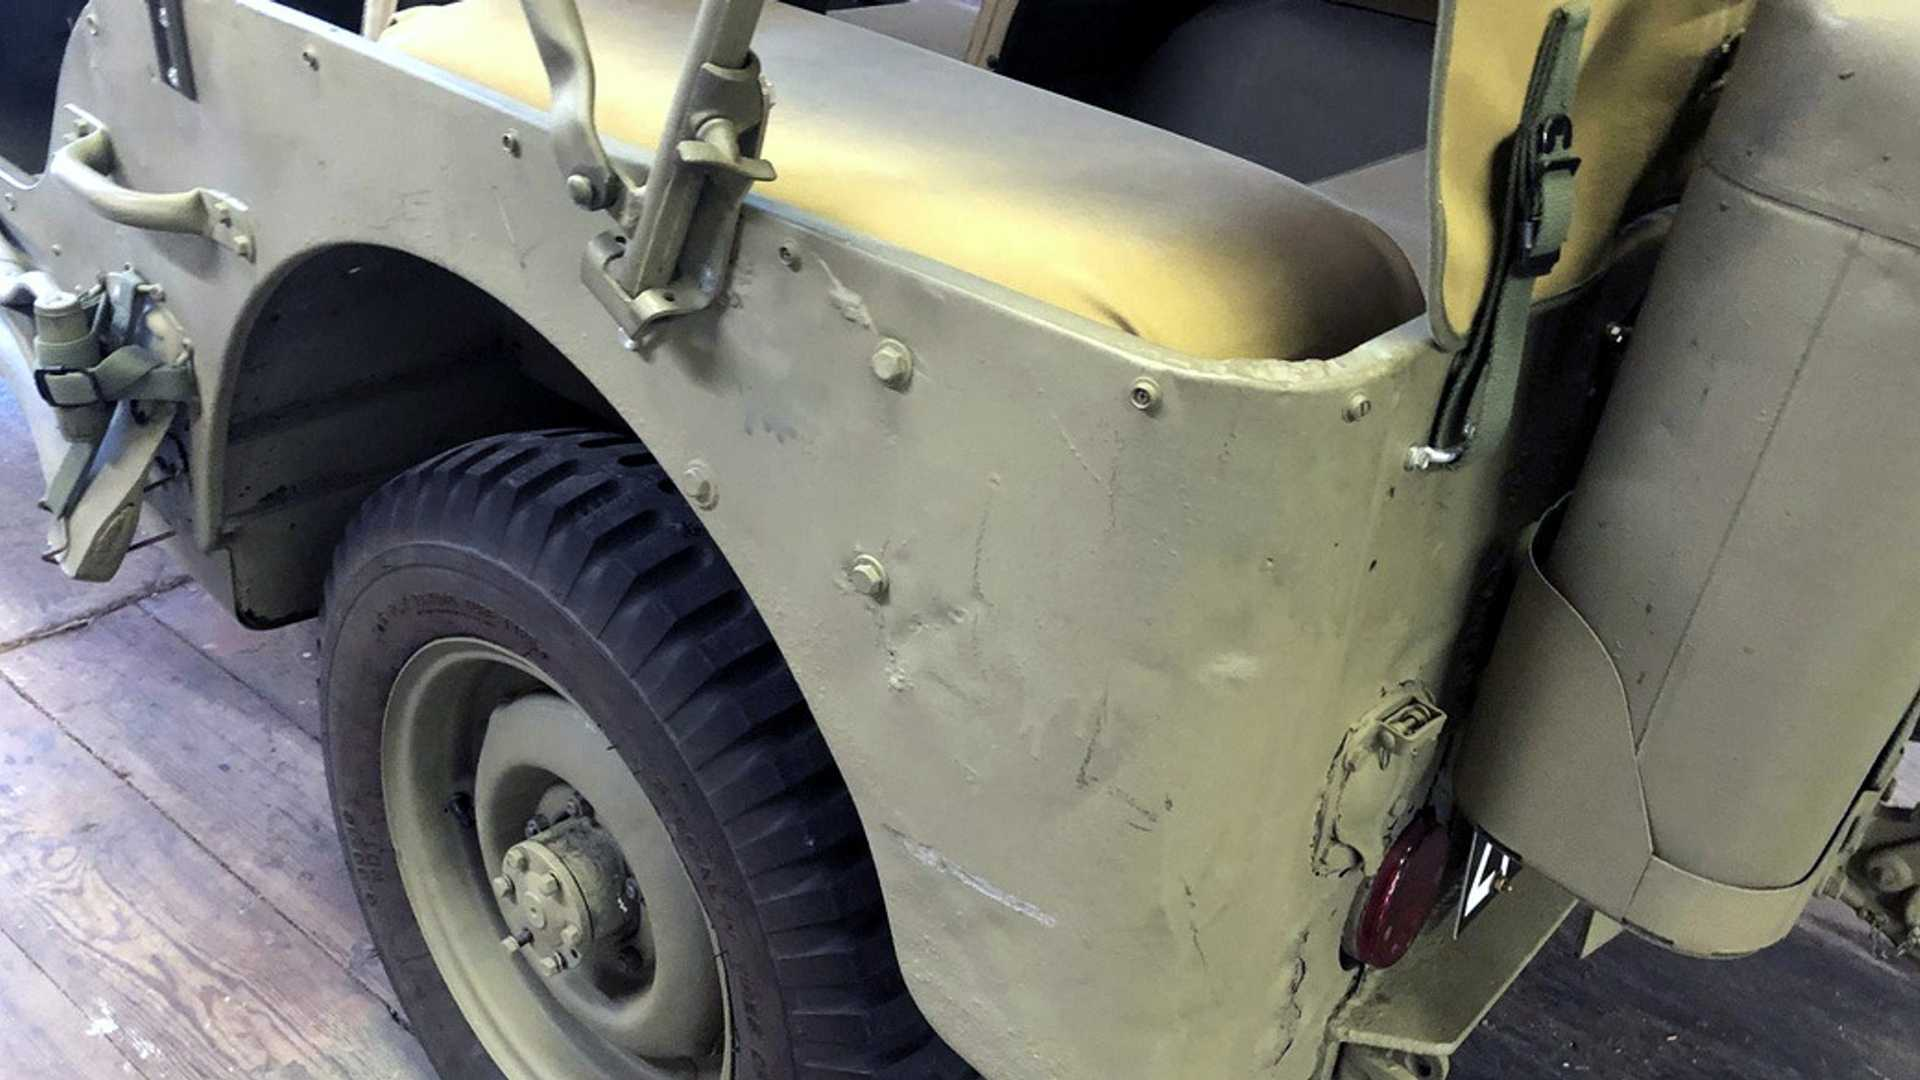 Original 1945 Willys MB Up For Grabs